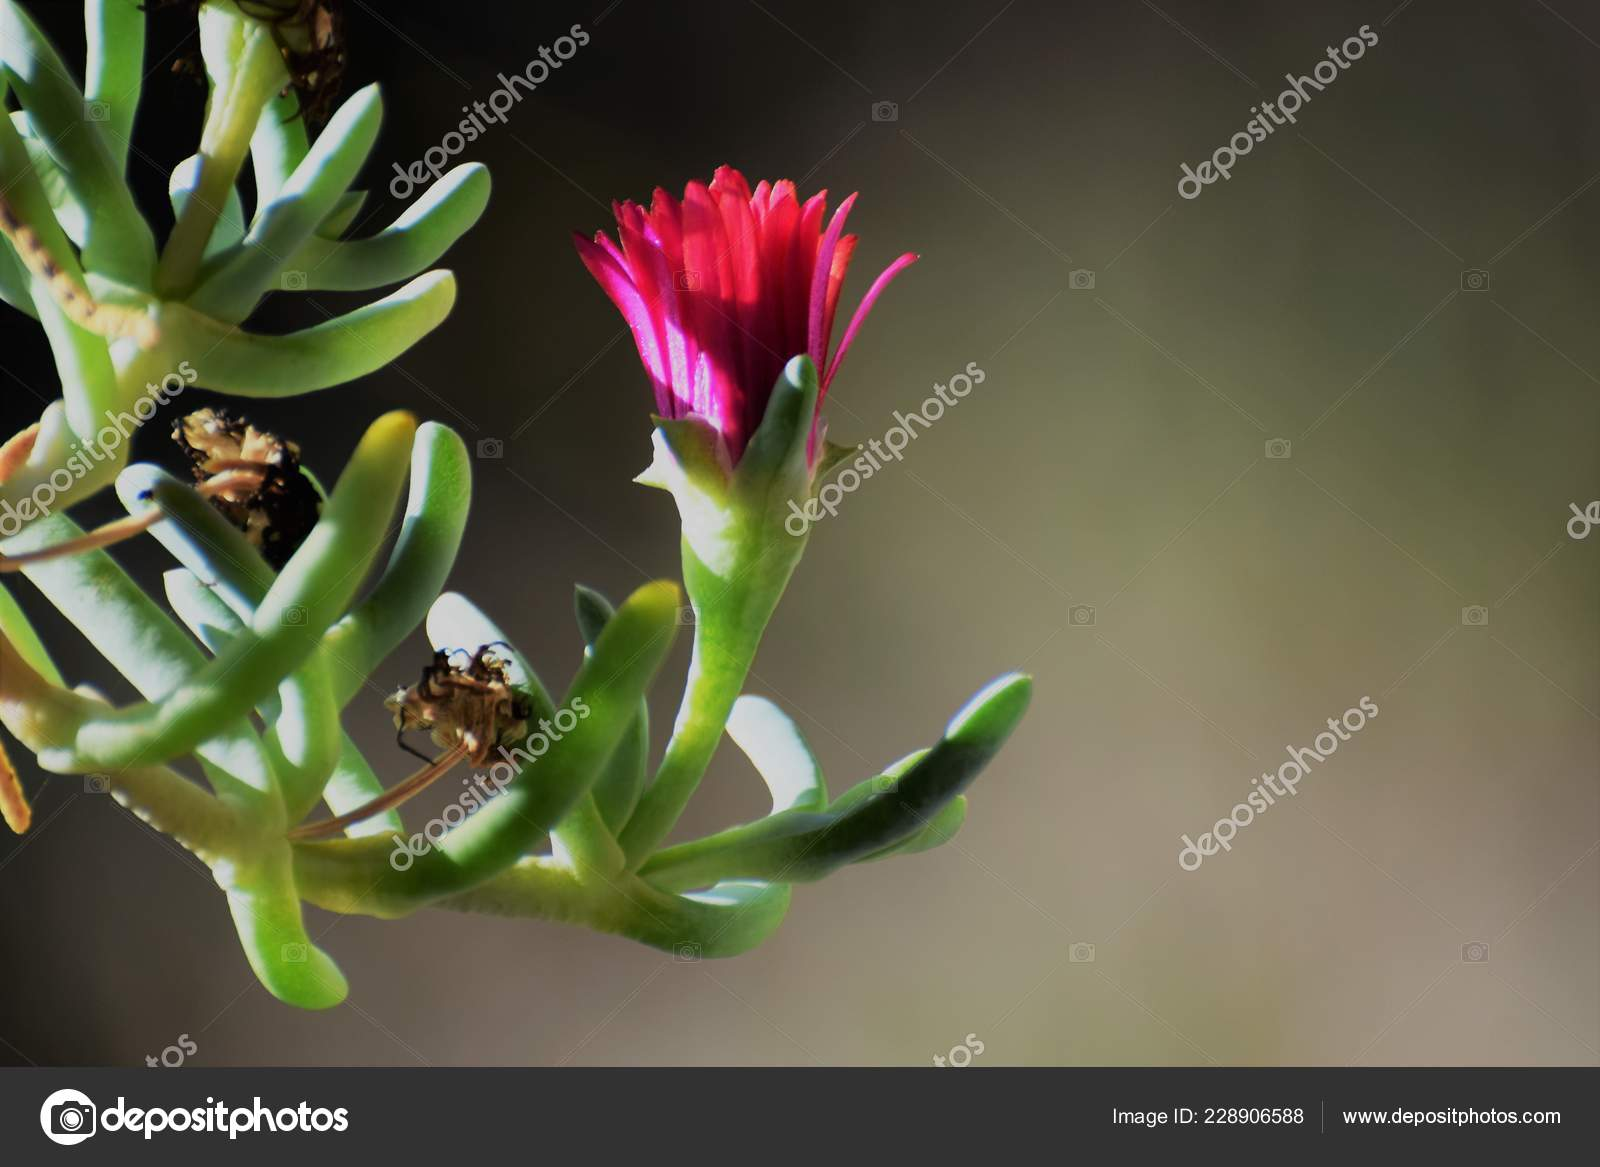 Good Morning Beautiful Flower Stock Photo Krasnenkongmailcom